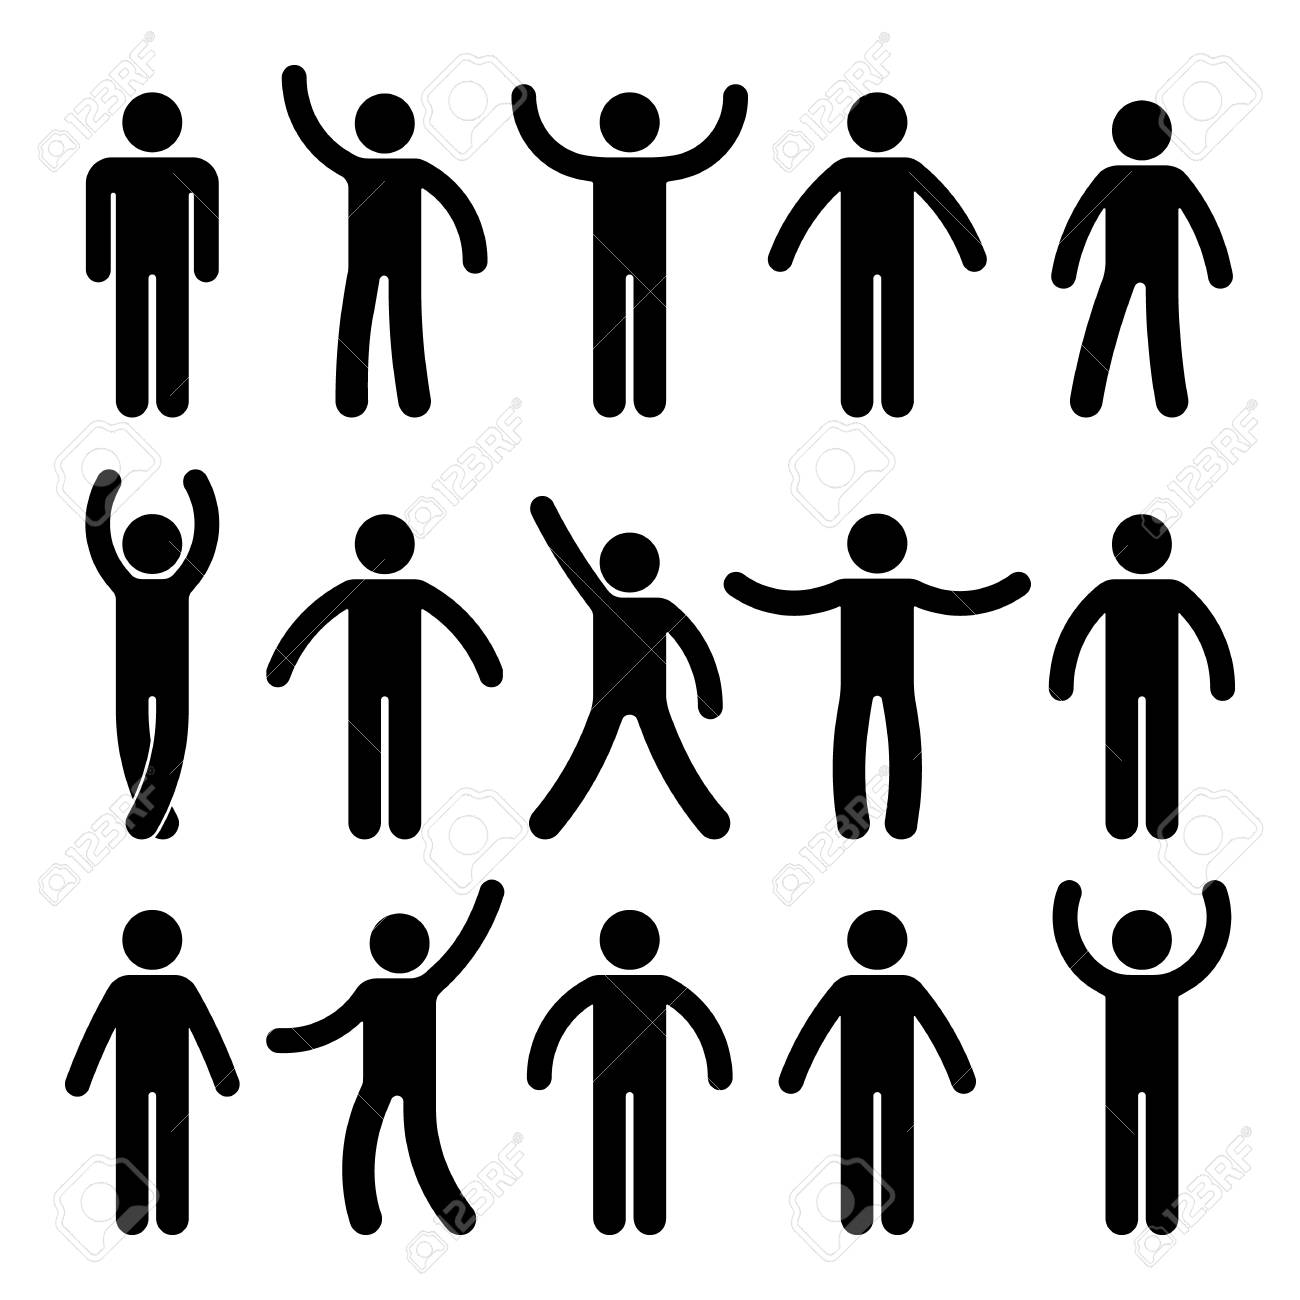 stick figure standing position. posing person icon posture symbol.. royalty  free cliparts, vectors, and stock illustration. image 88141732.  123rf